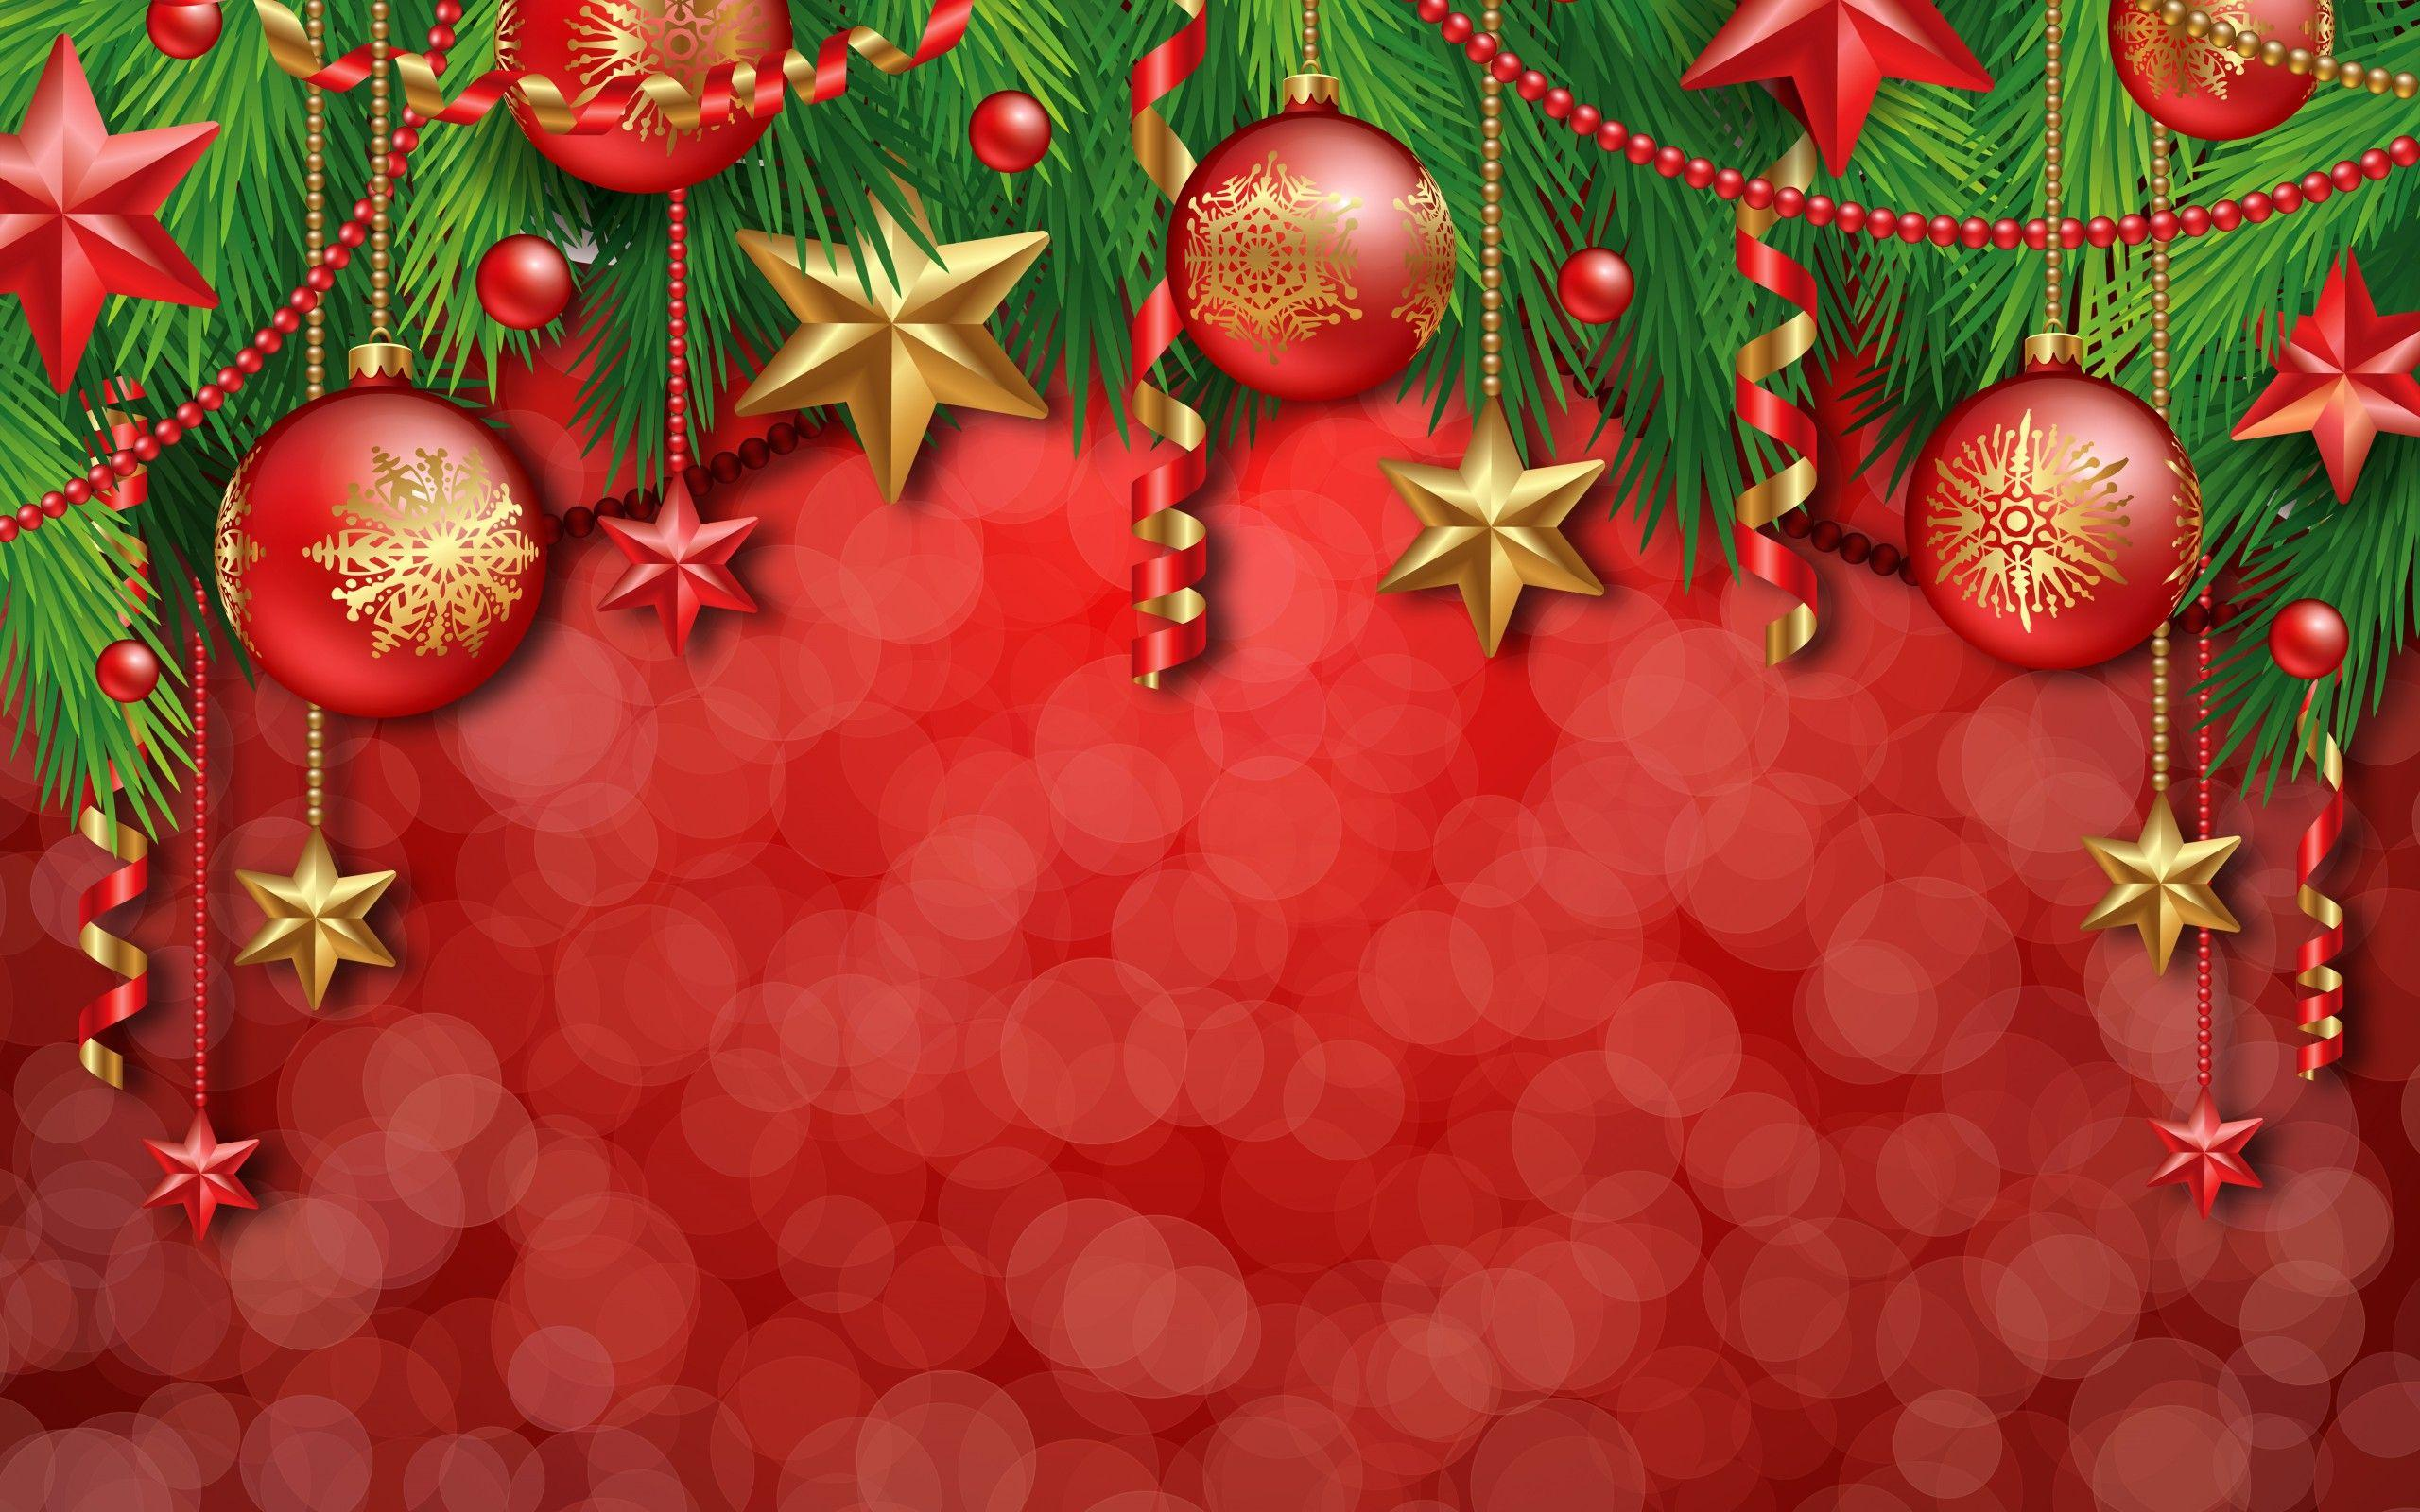 Christmas Decorations Illustration Desktop Wallpapers